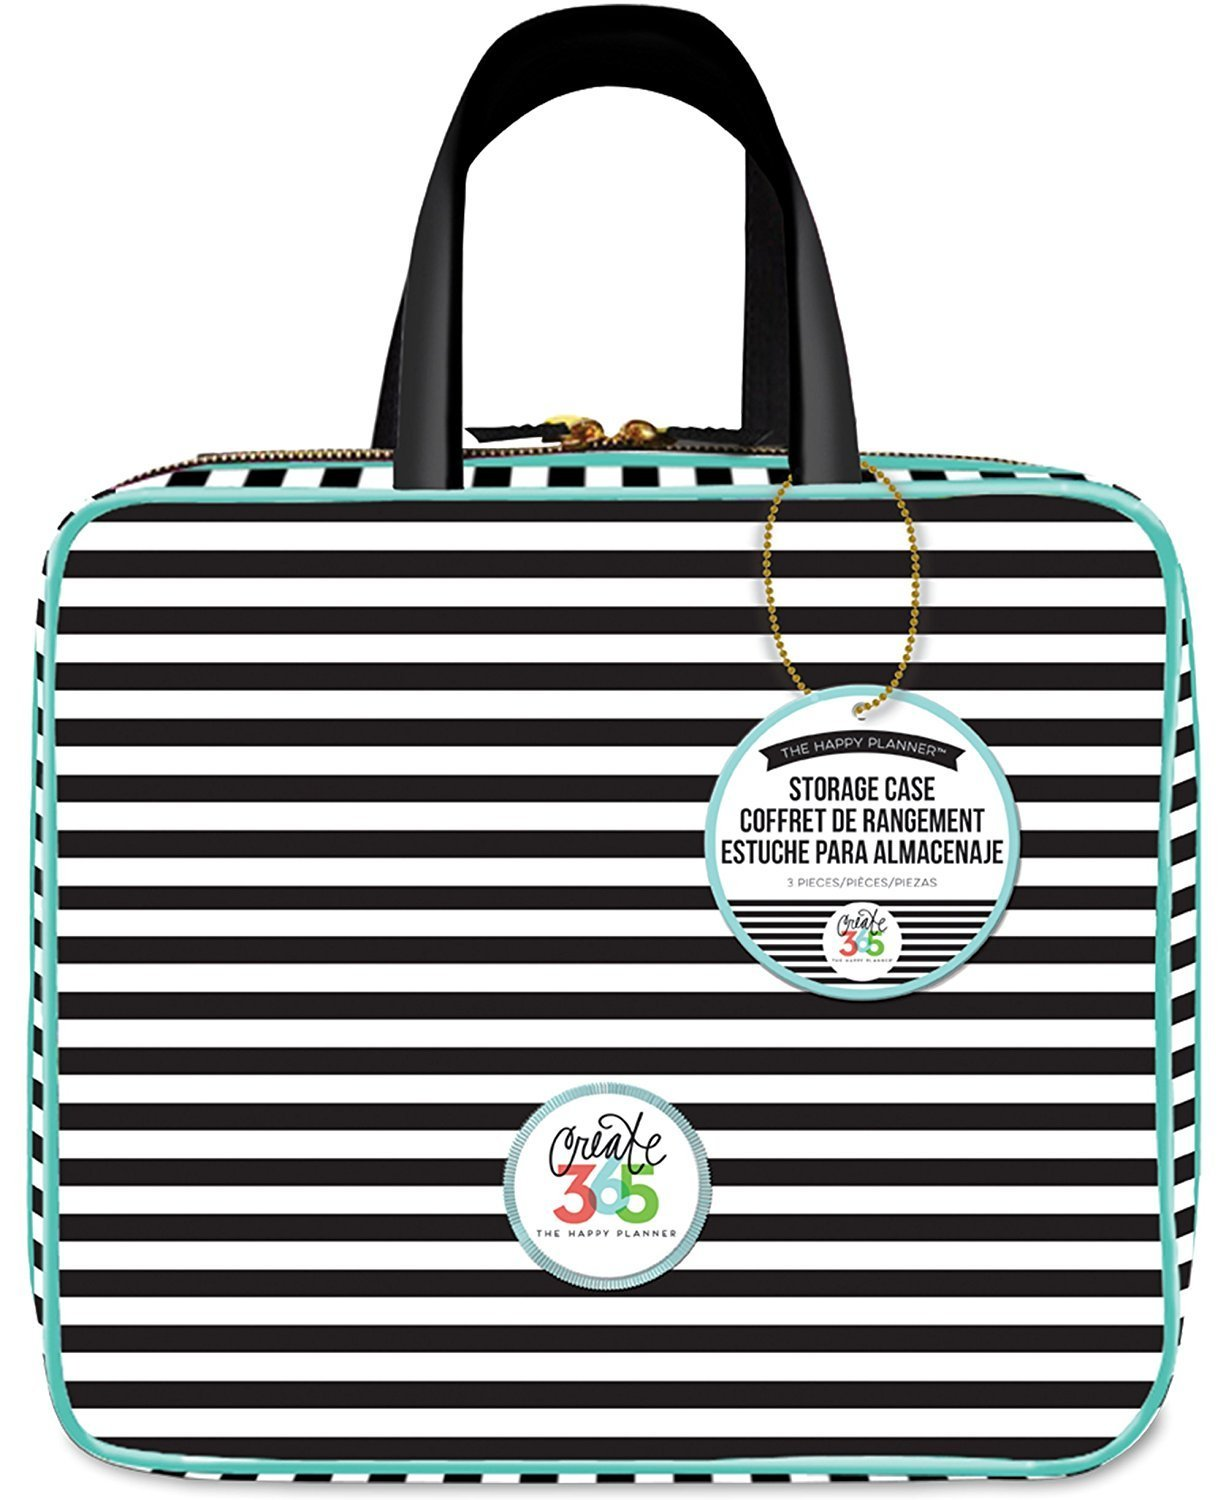 Me & My Big Ideas Striped Storage Case Planner (Limited Edition)